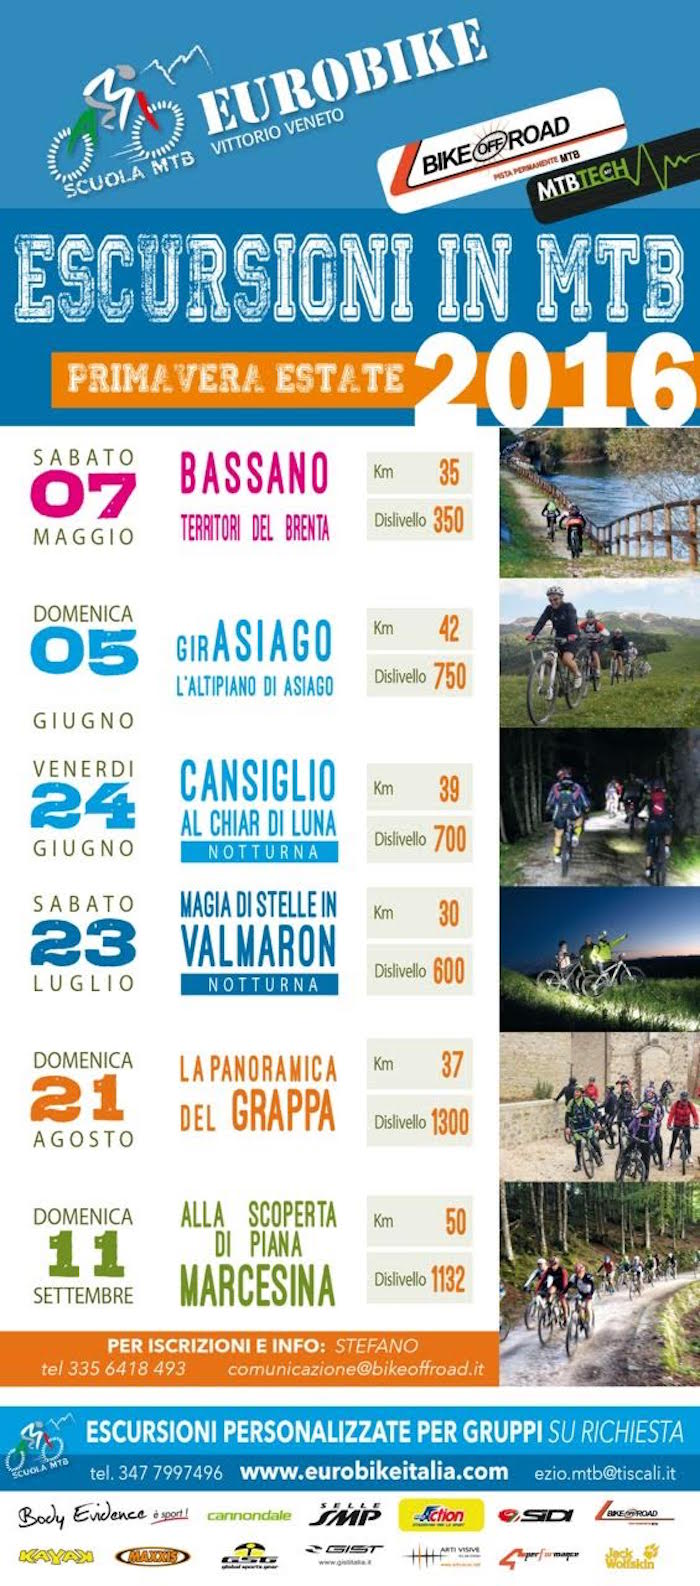 Escursioni MTB primavera-estate 2016